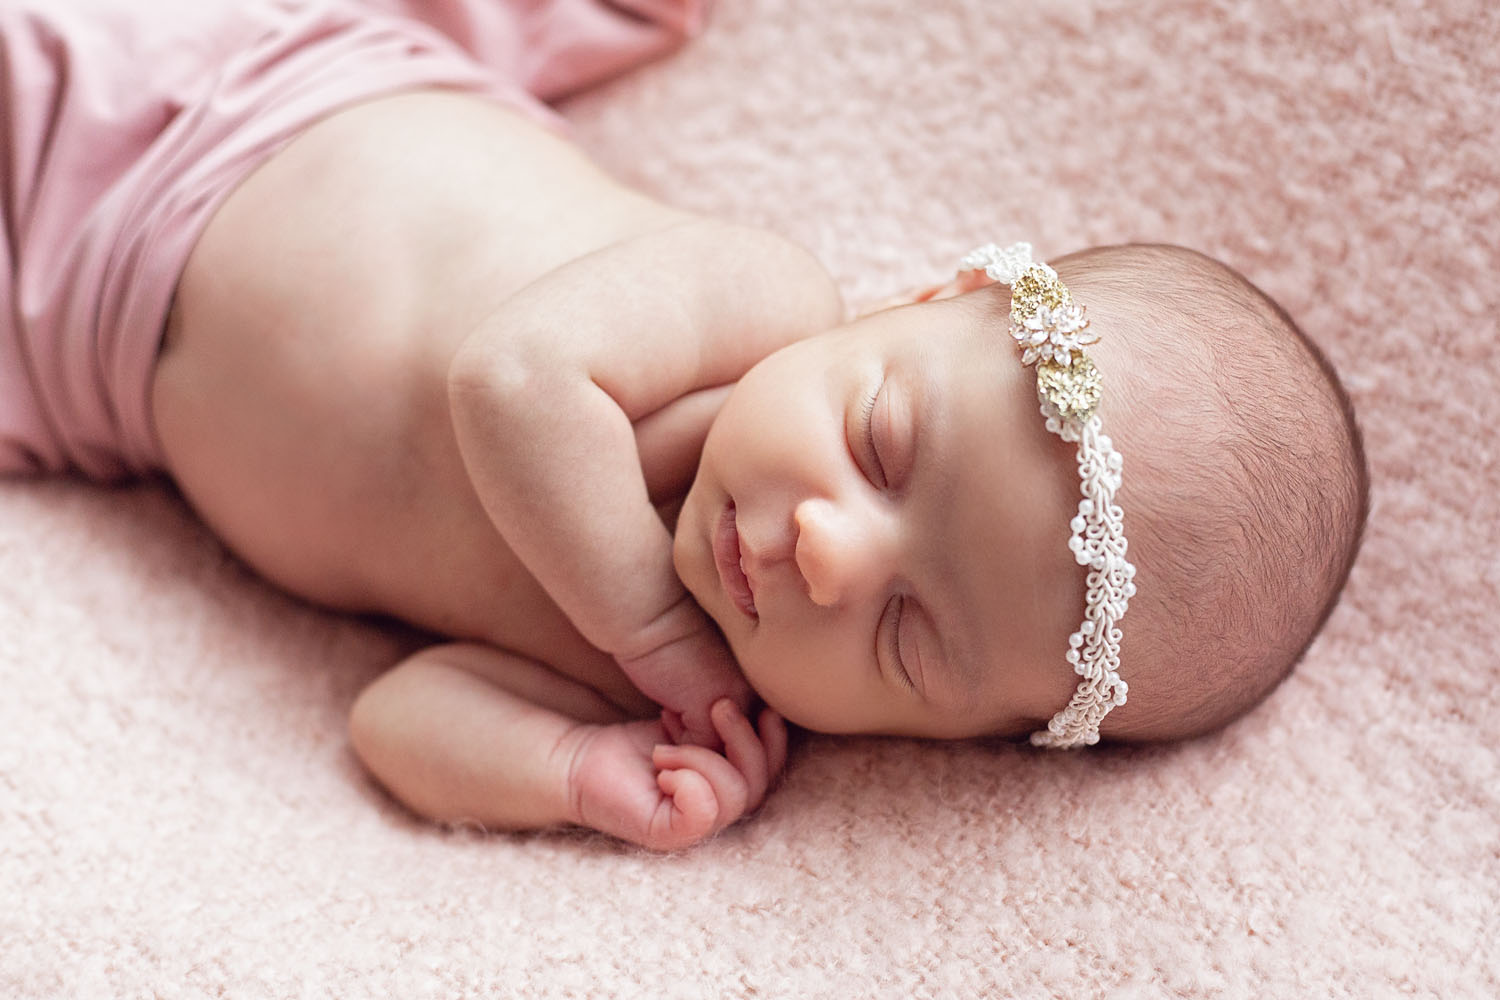 Newborn photography in new jersey of a baby girl on a pink blanket with a jewel headband in nutley